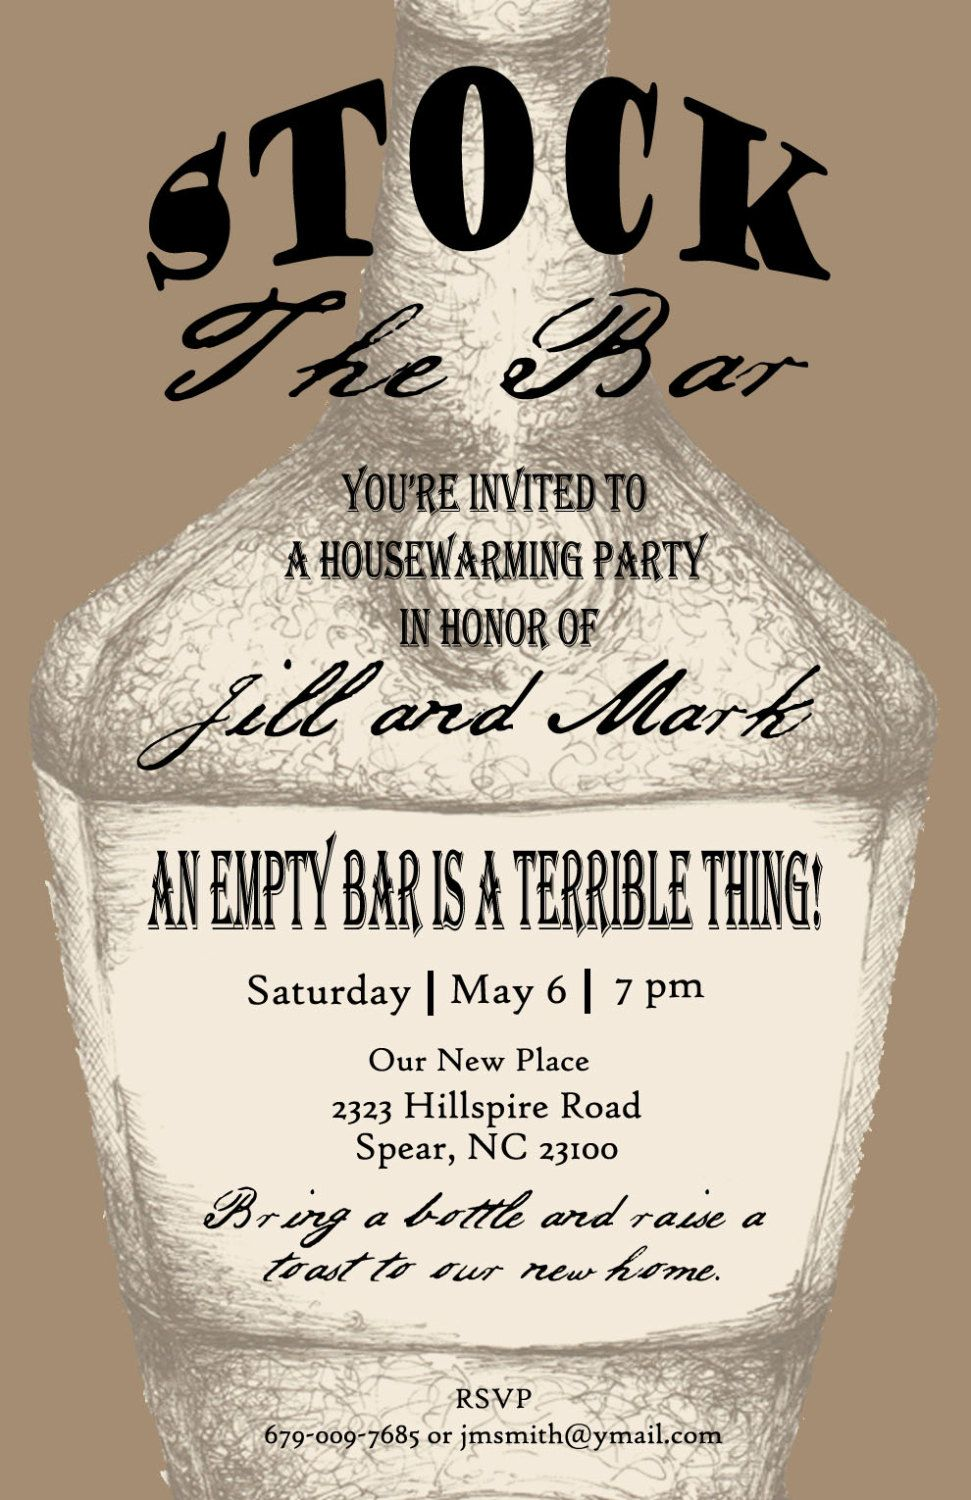 housewarming party invitations for guy - Google Search ...